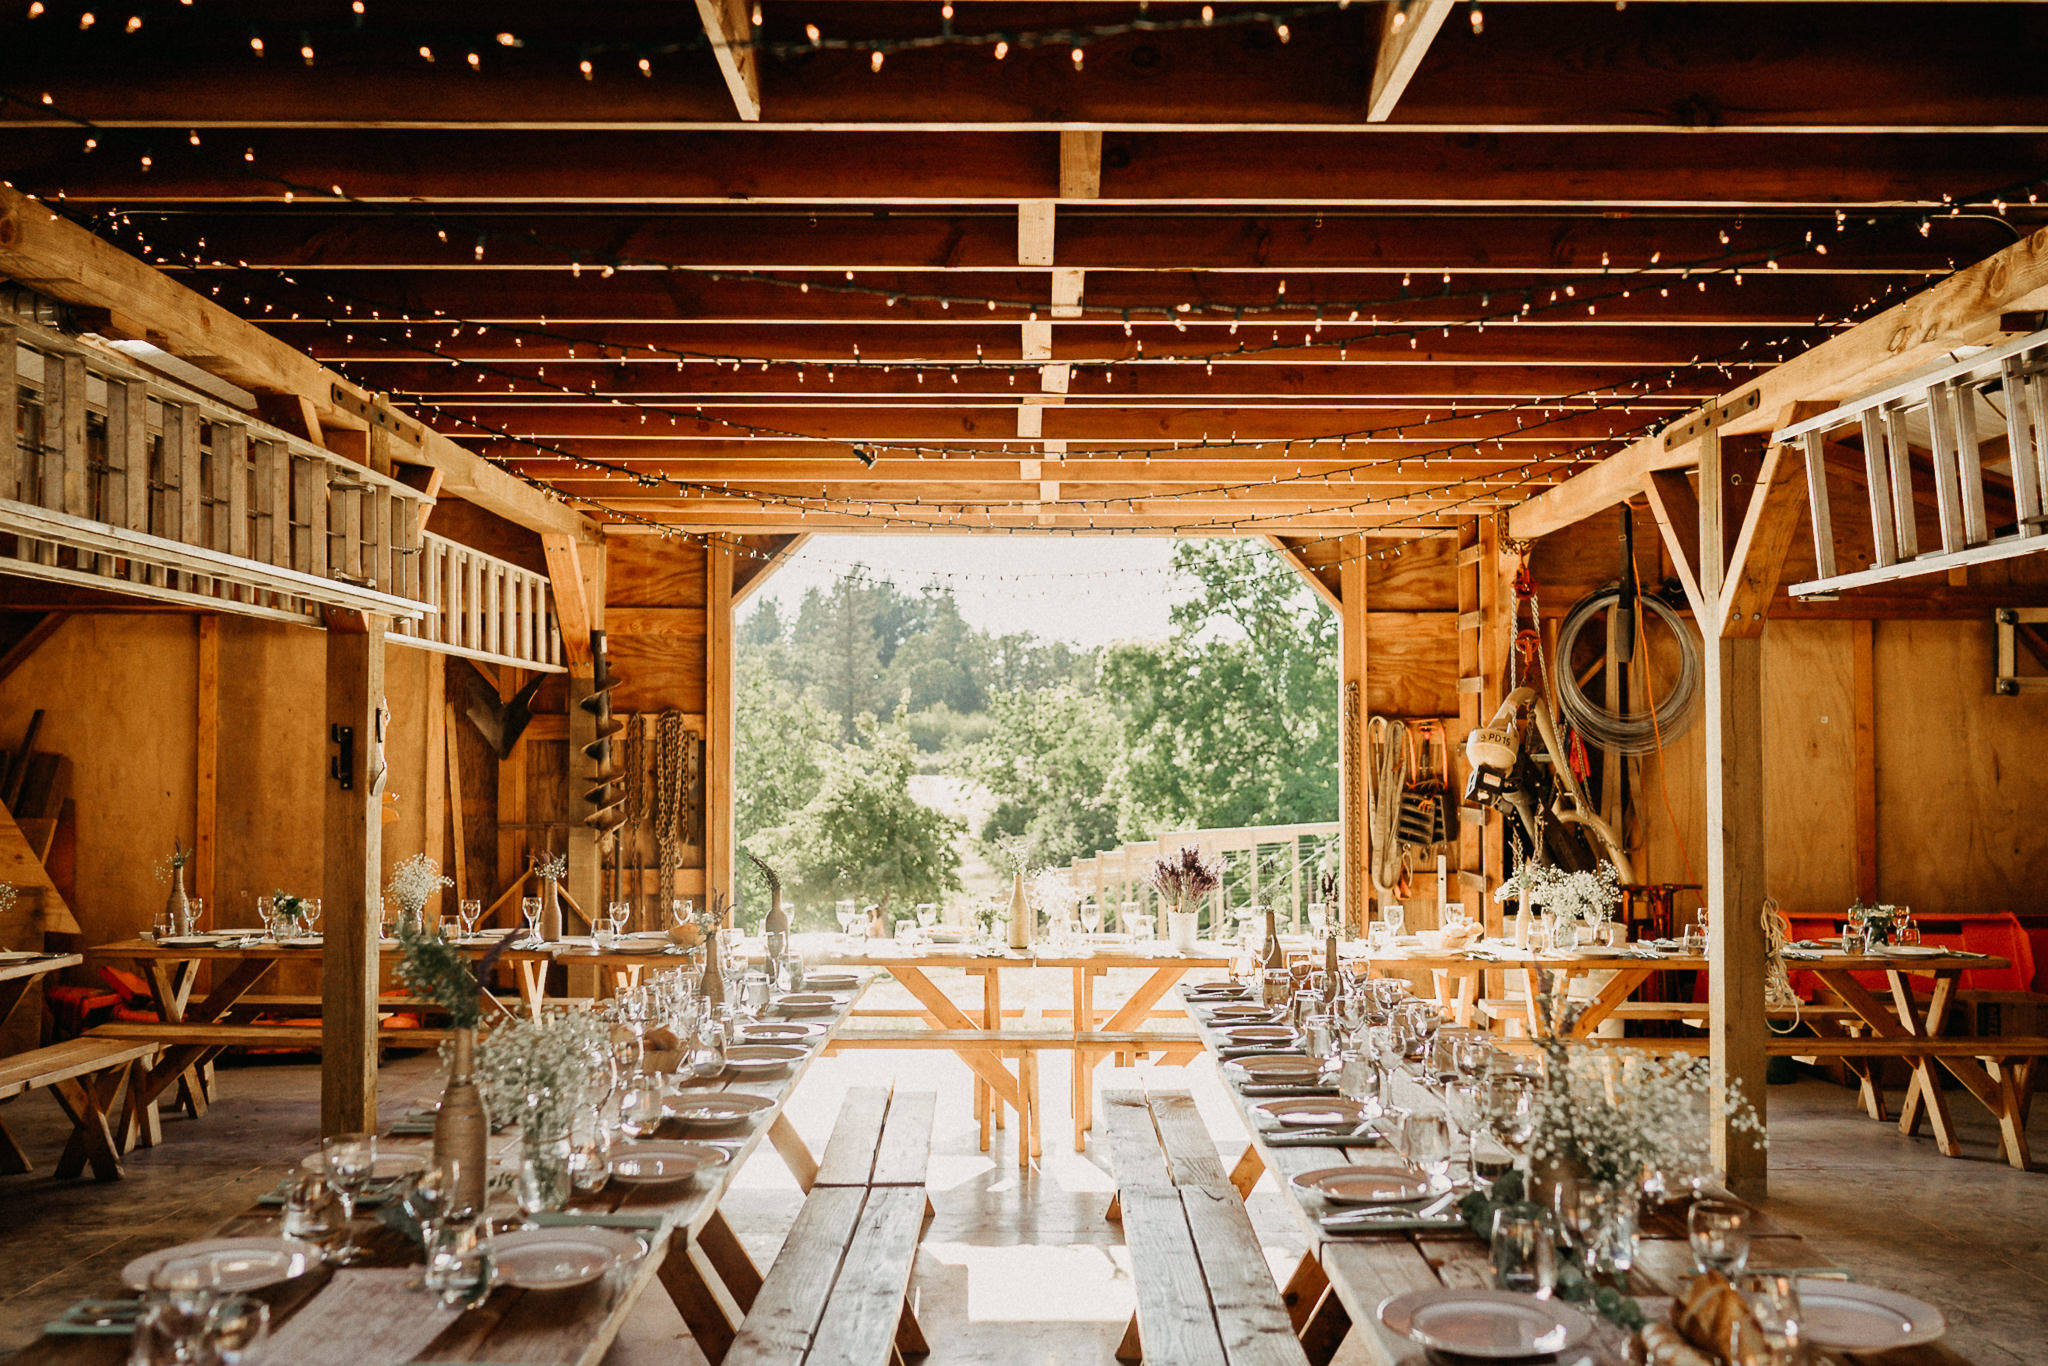 Summerhill-Farms-Portland-Wedding-Photographer-Backyard-Vineyard-65.jpg